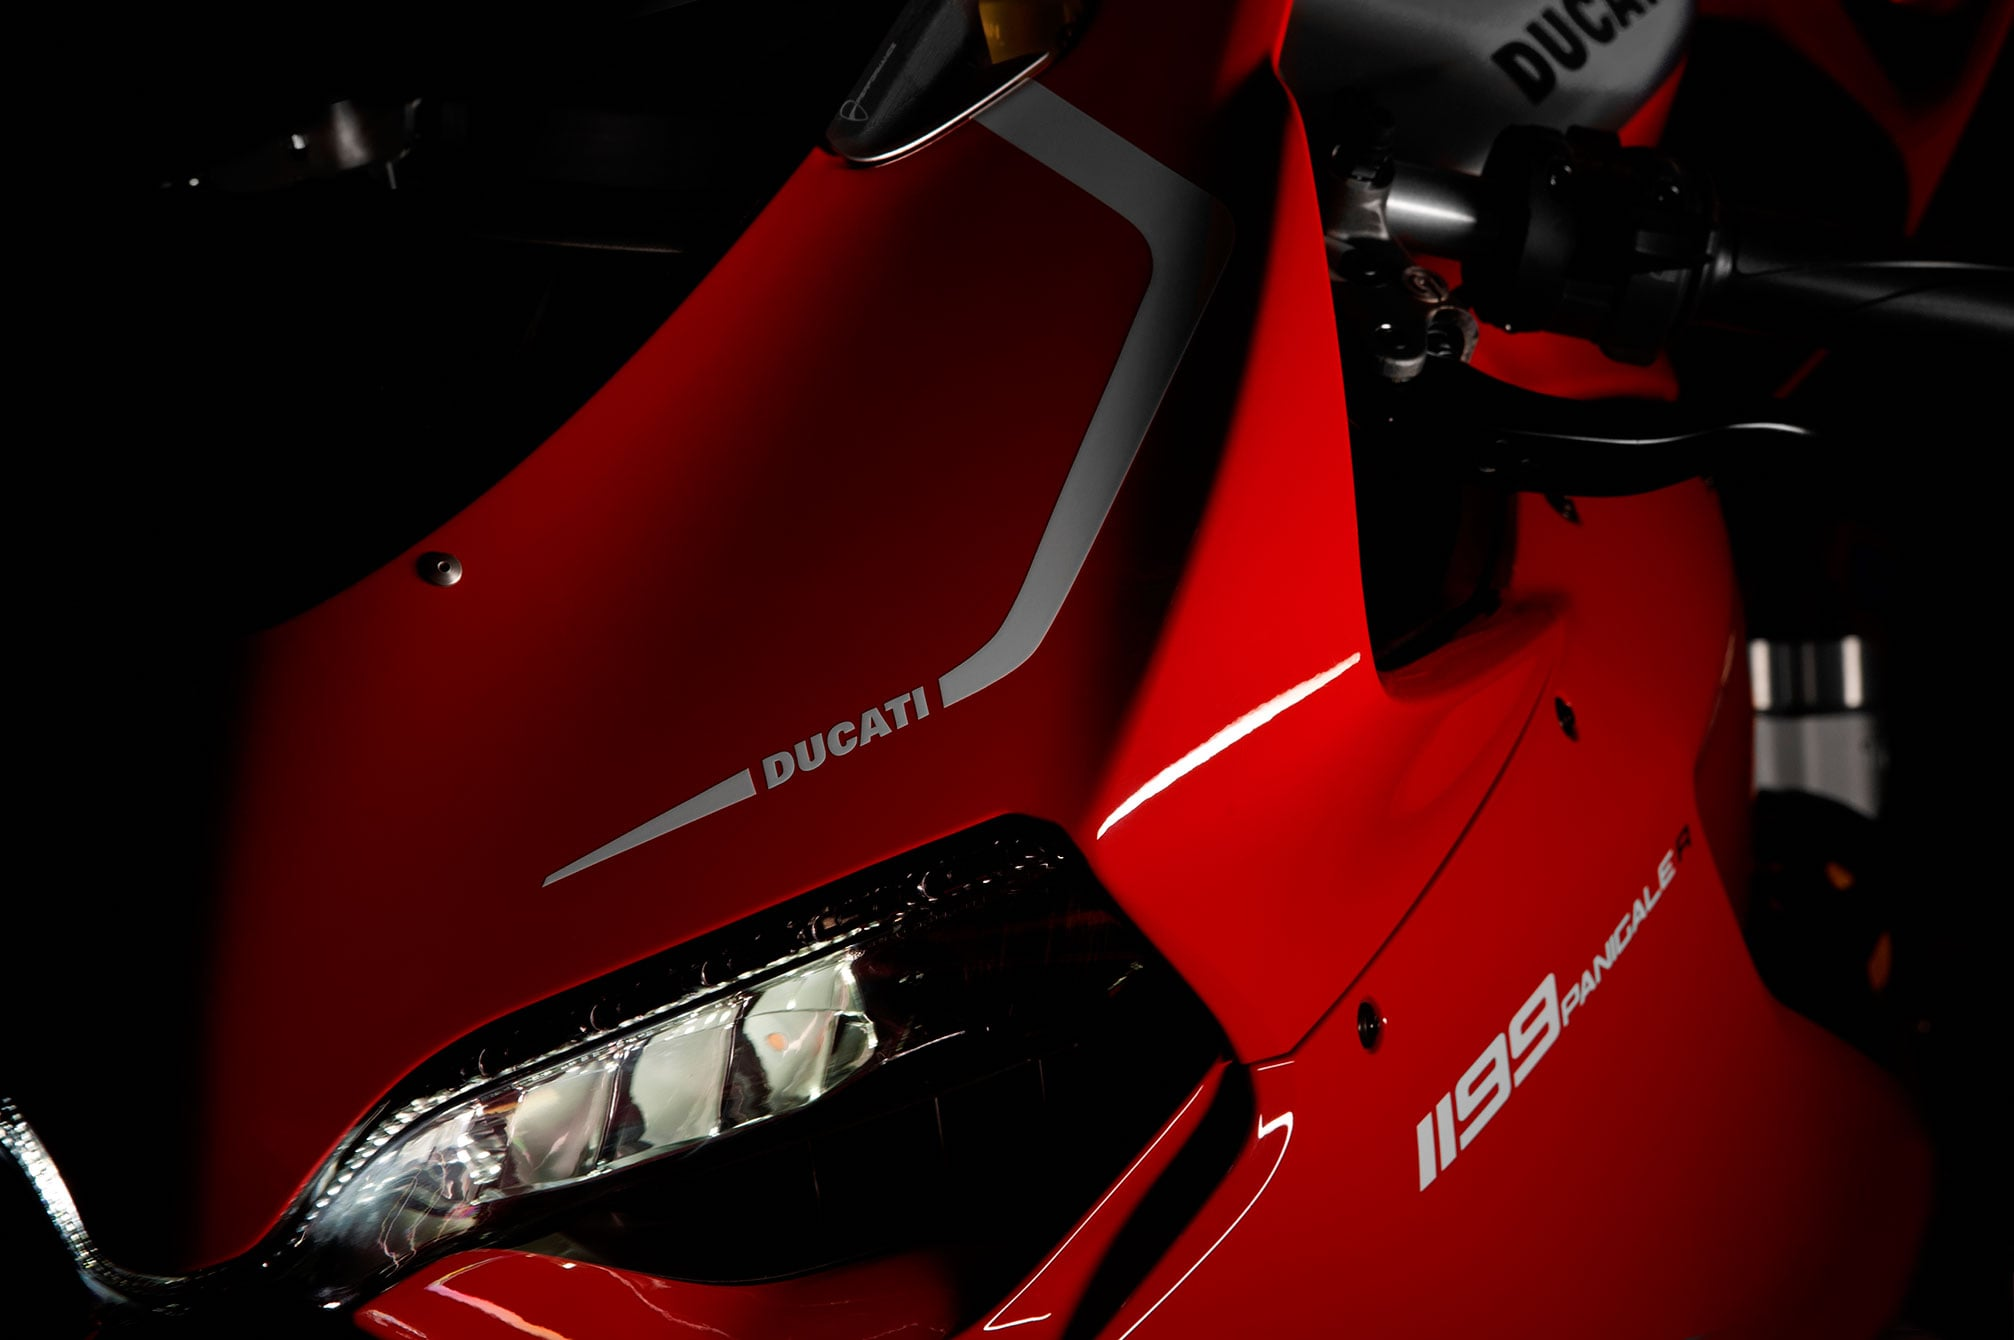 22 Ducati 1199 Panigale wallpapers HD 2014x1340